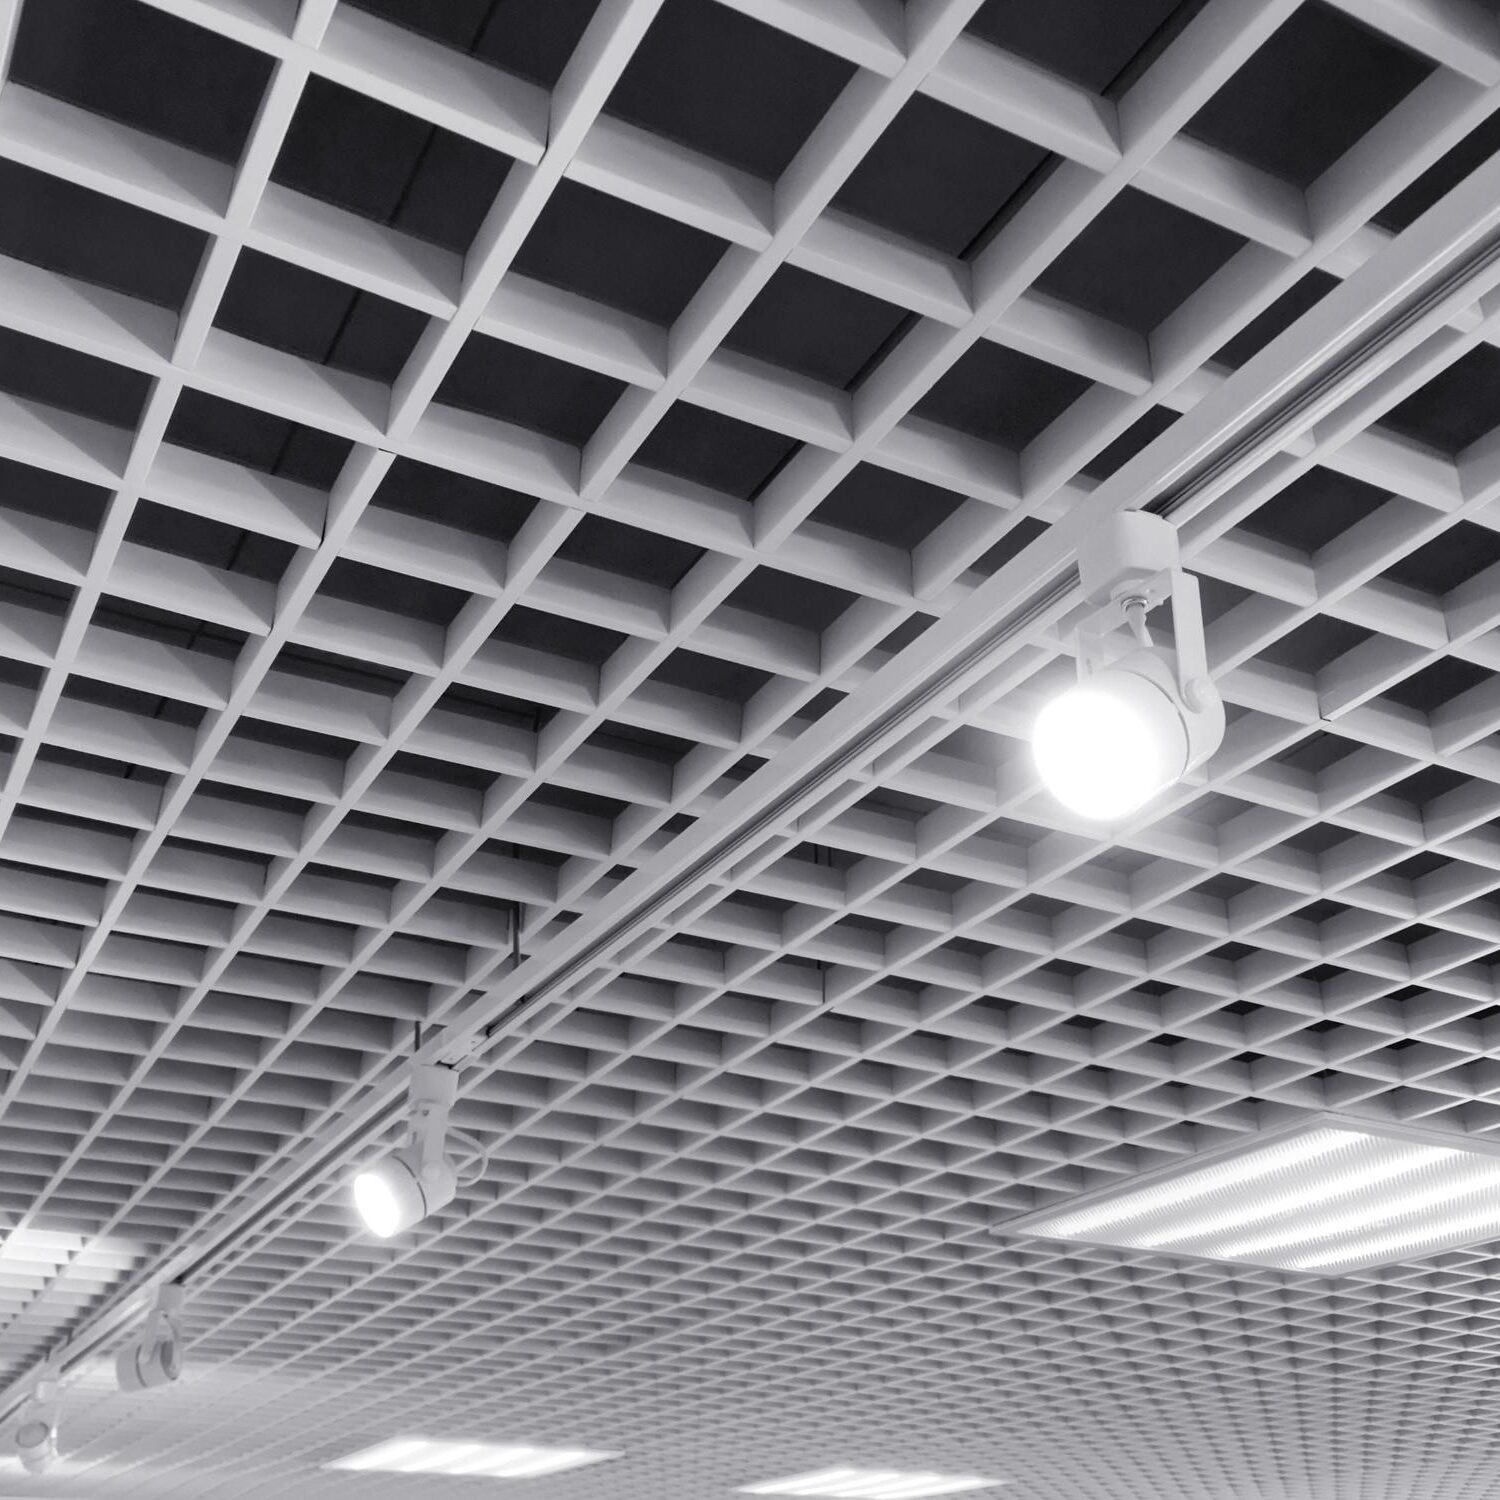 row of bright halogen spotlights on exhibition ceiling grid